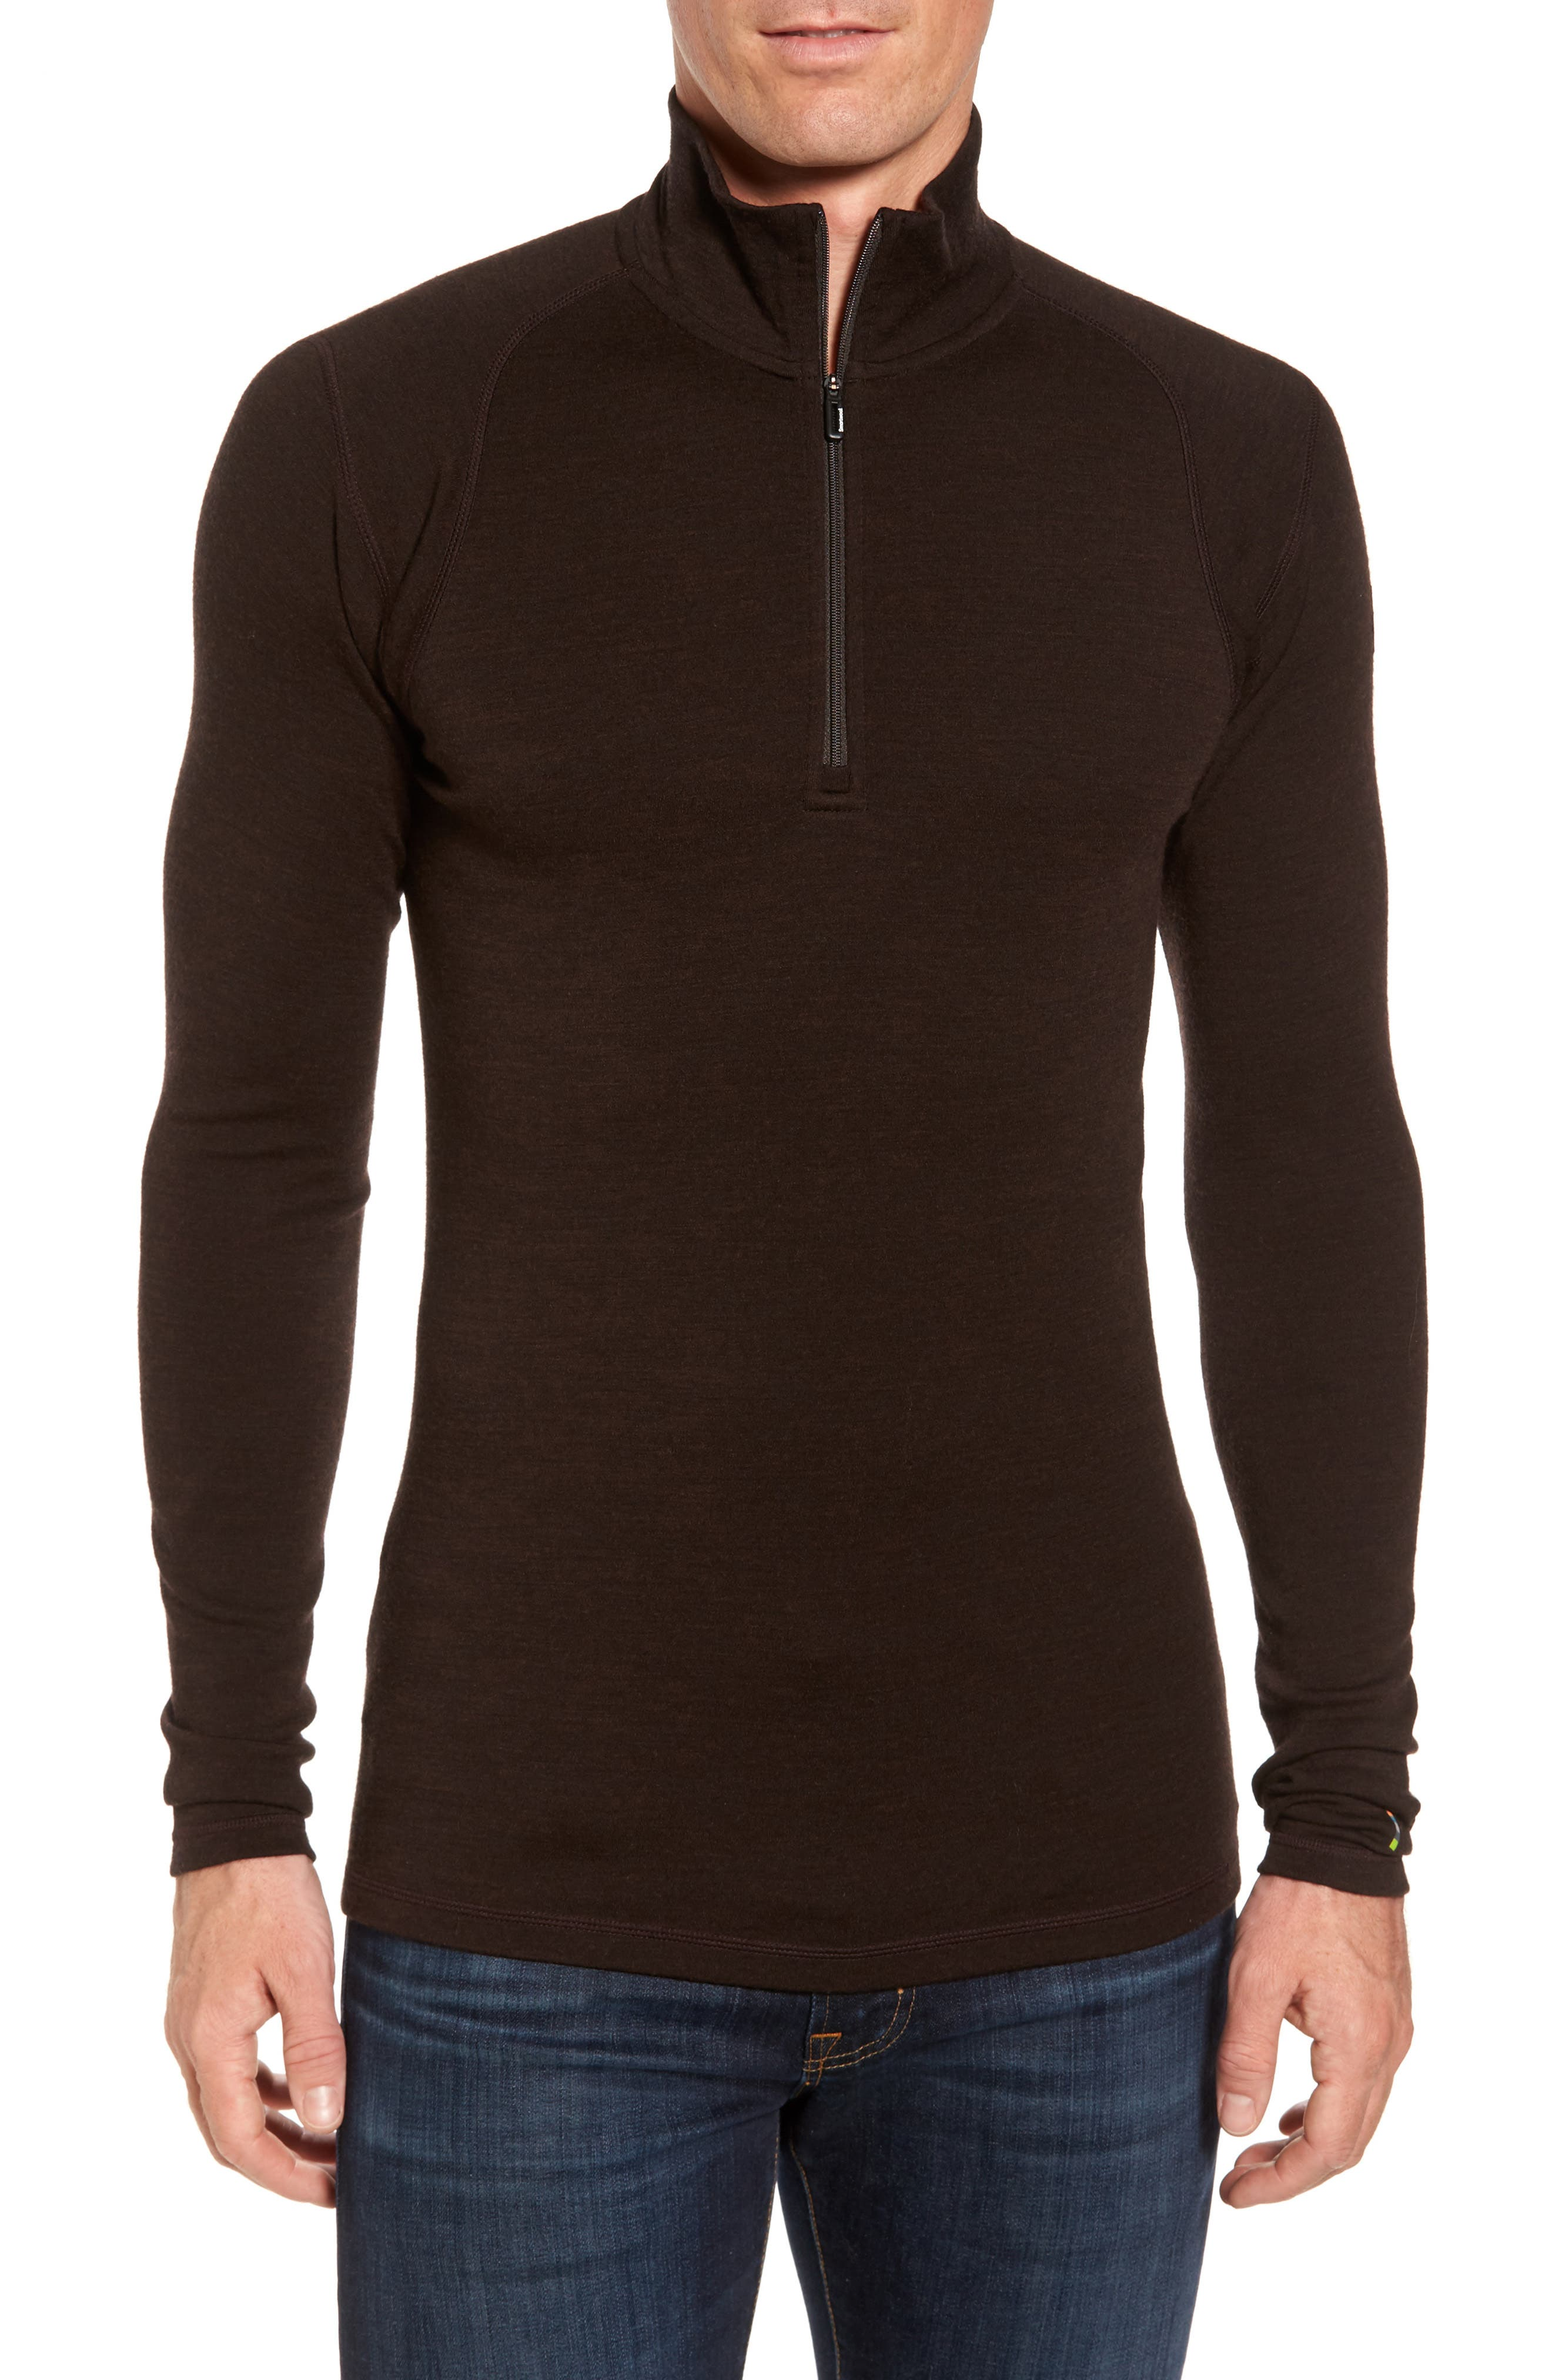 Main Image - Smartwool Merino 250 Base Layer Quarter Zip Pullover